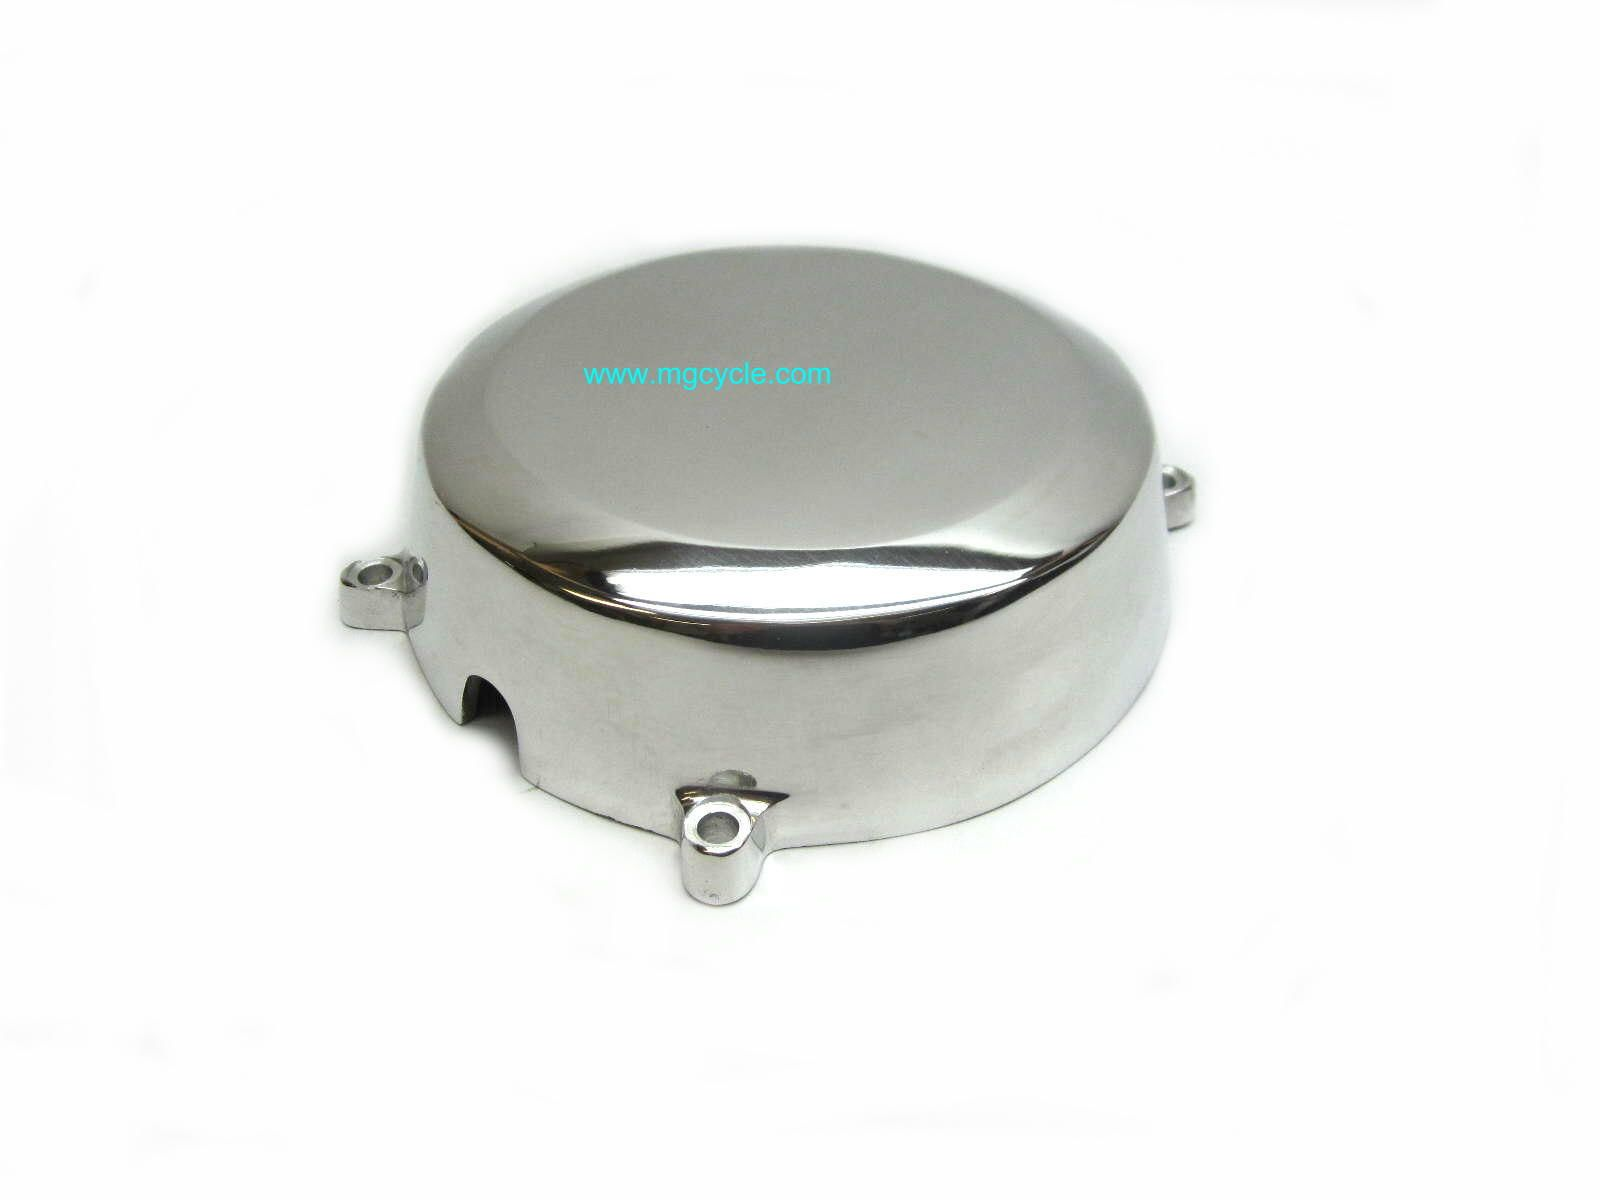 Alternate aluminum alternator cover for many Guzzi big twins